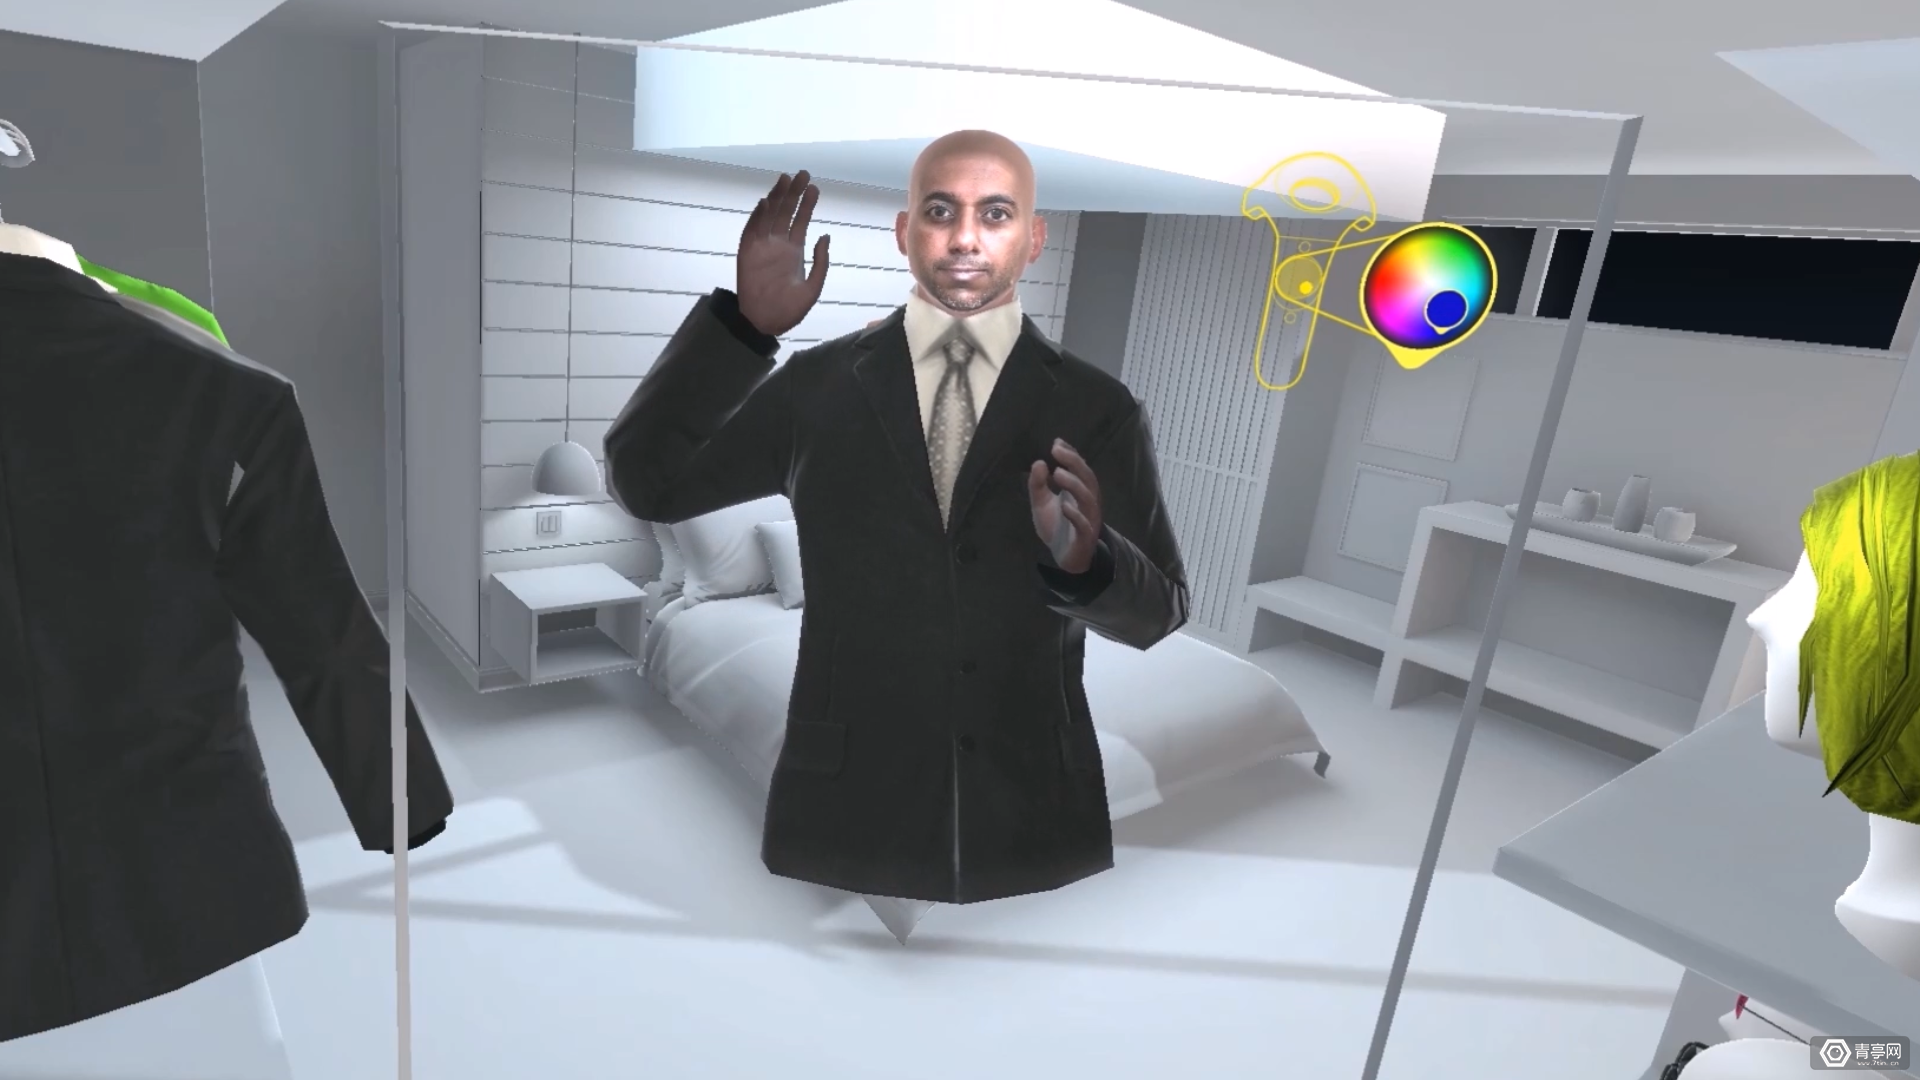 2_ObEN Virtual Avatar in VR